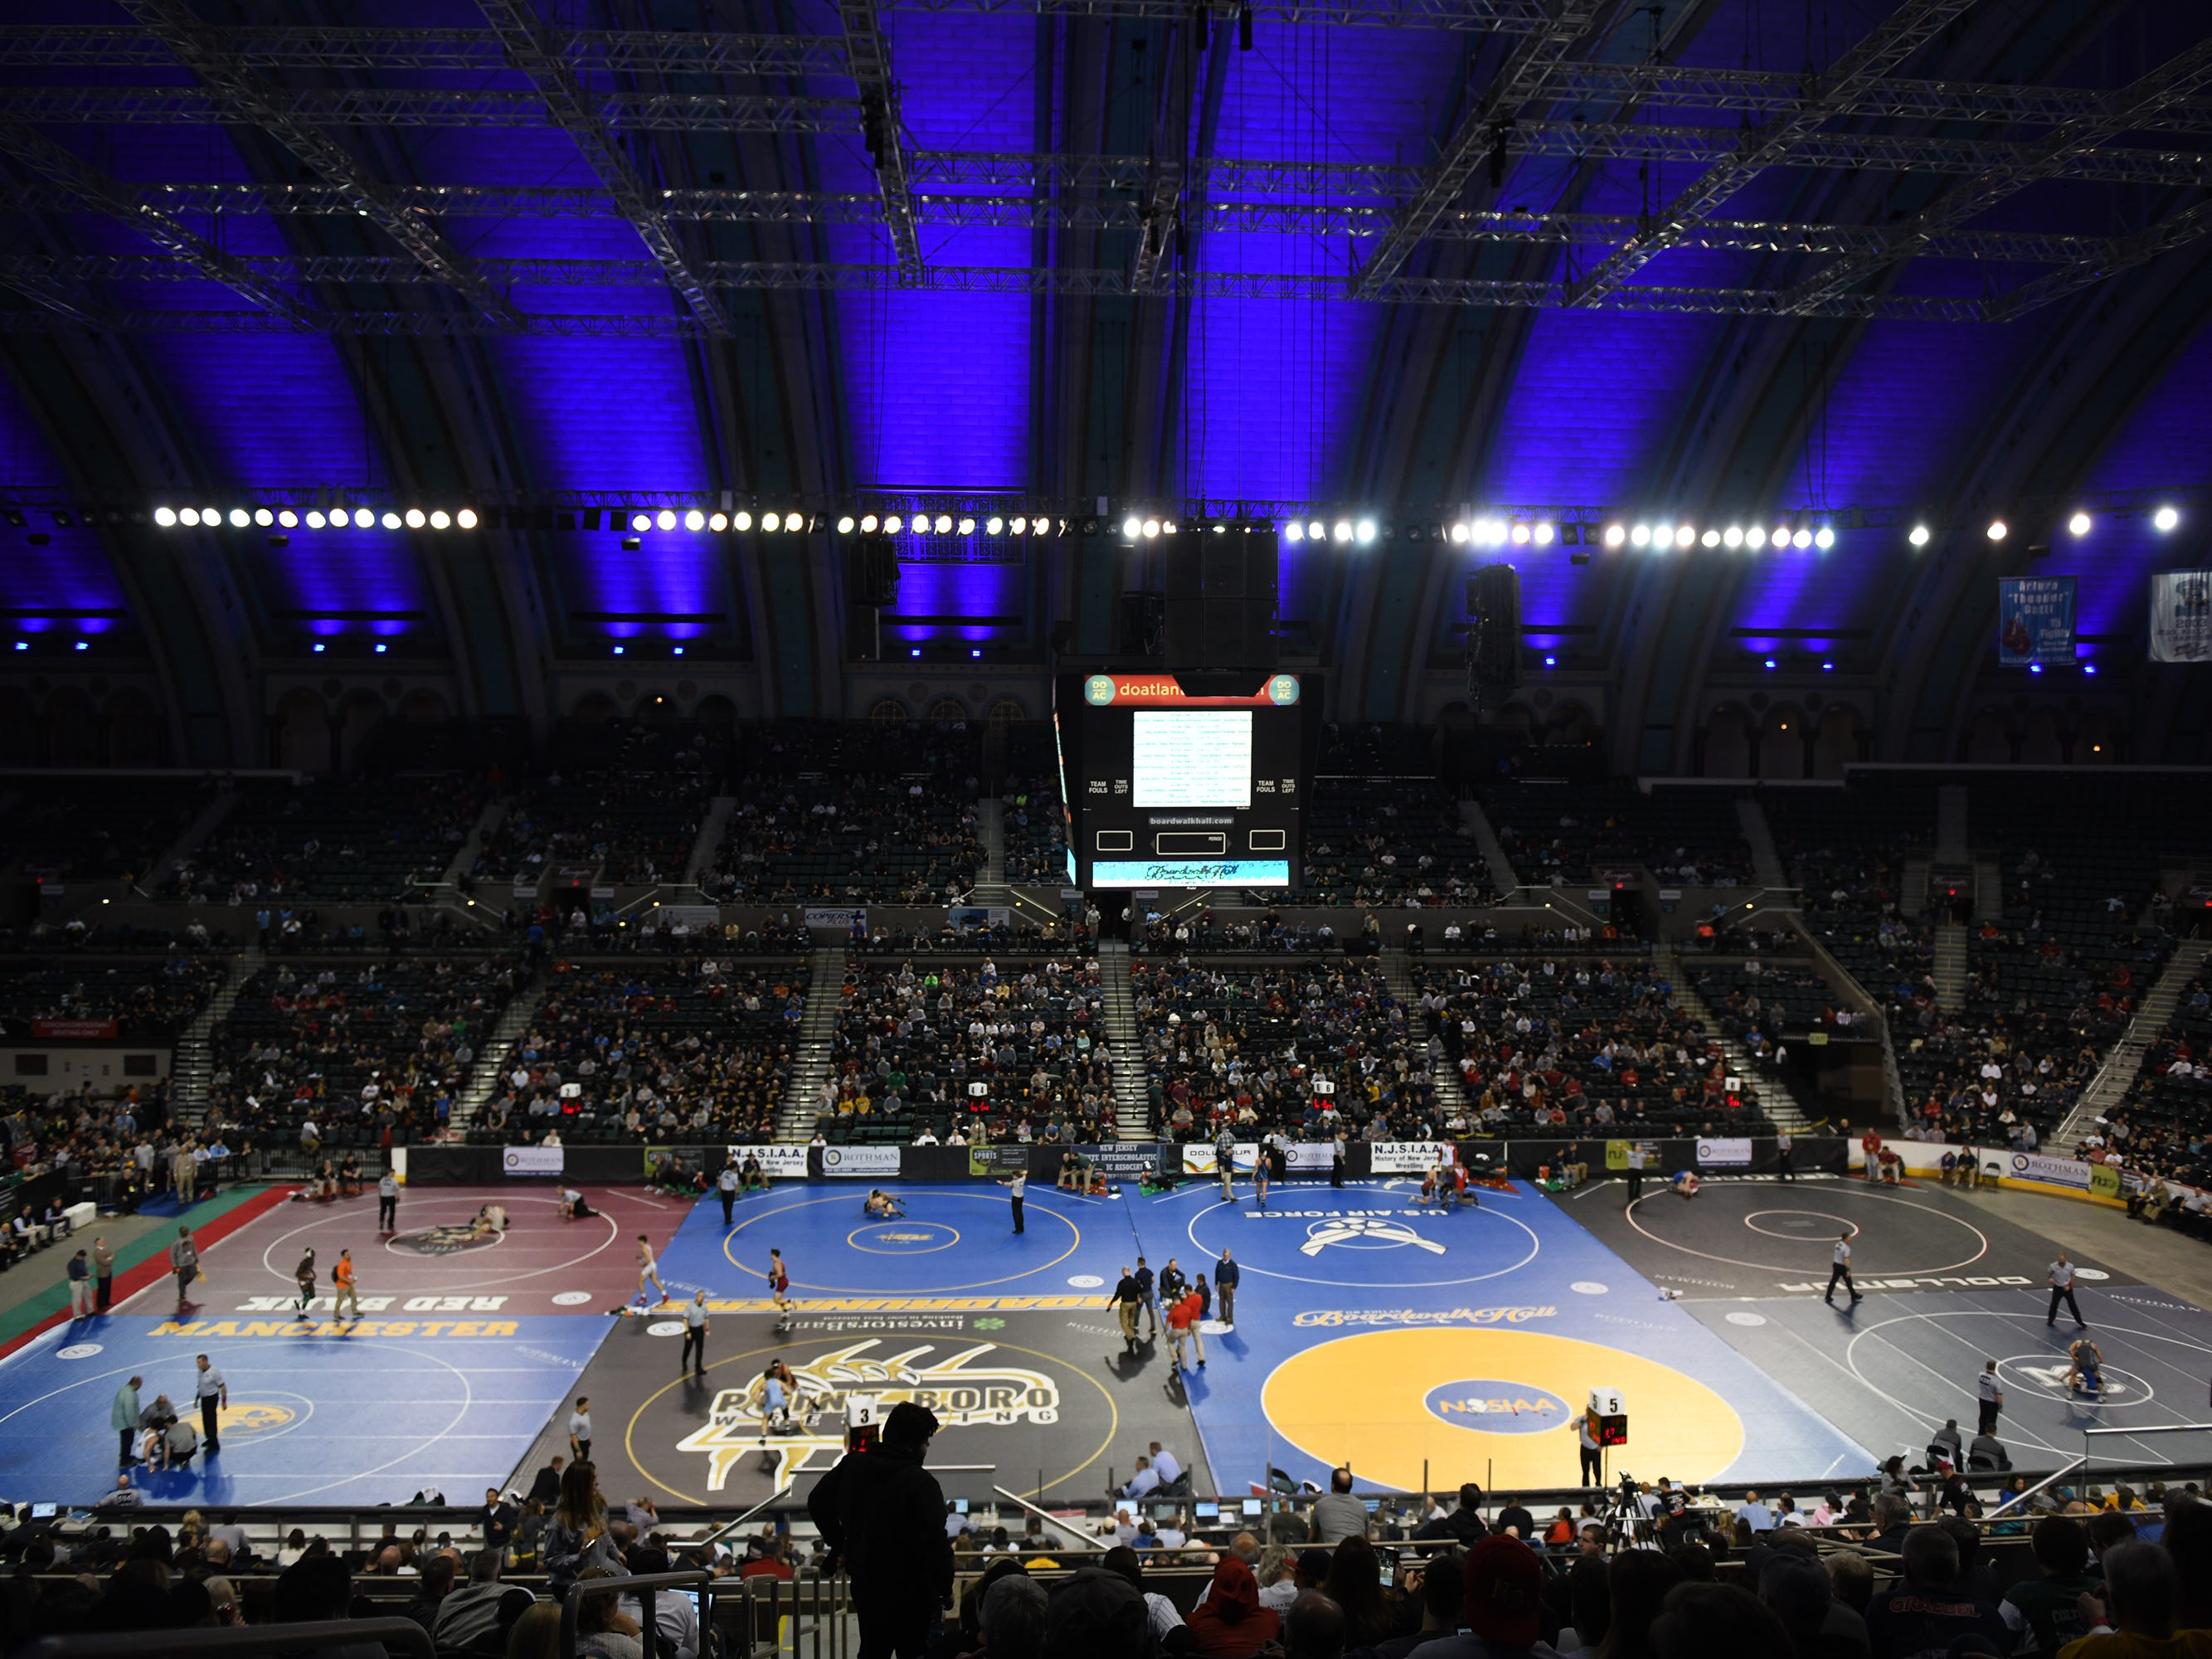 The 2019 NJSIAA State Wrestling Championships tournament kicked off at Boardwalk Hall in Atlantic City on Thursday, February 28, 2019.